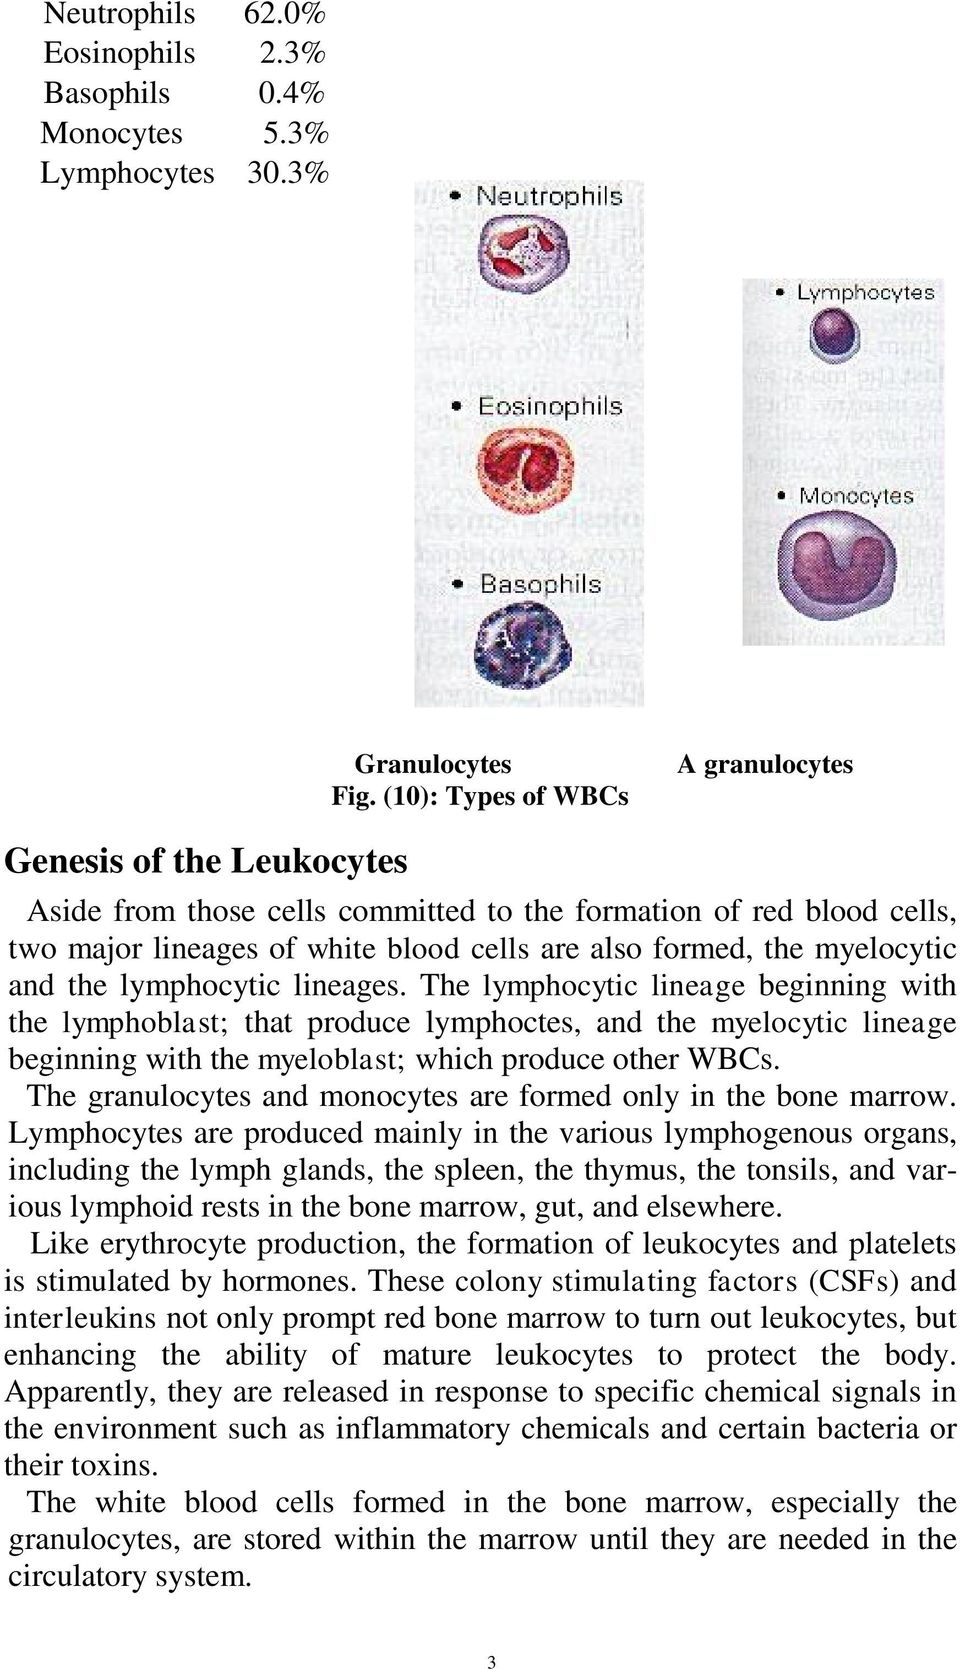 myelocytic and the lymphocytic lineages.